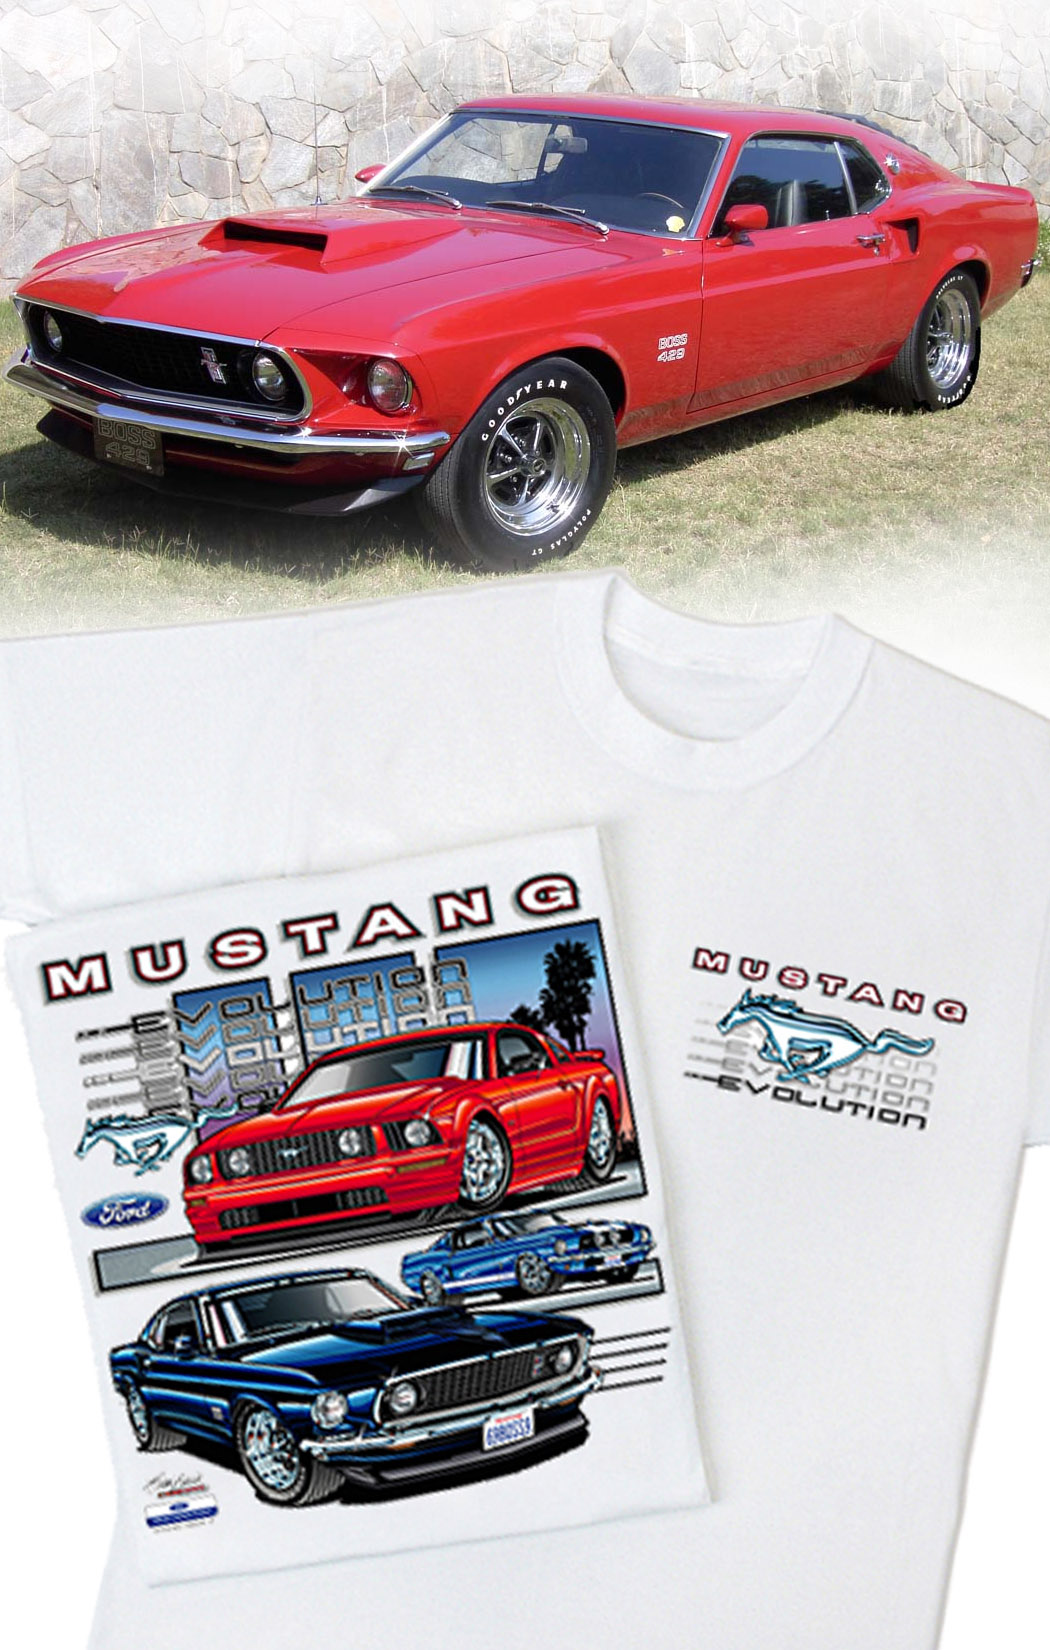 hs 041 mustang evolution for e-bay.jpg